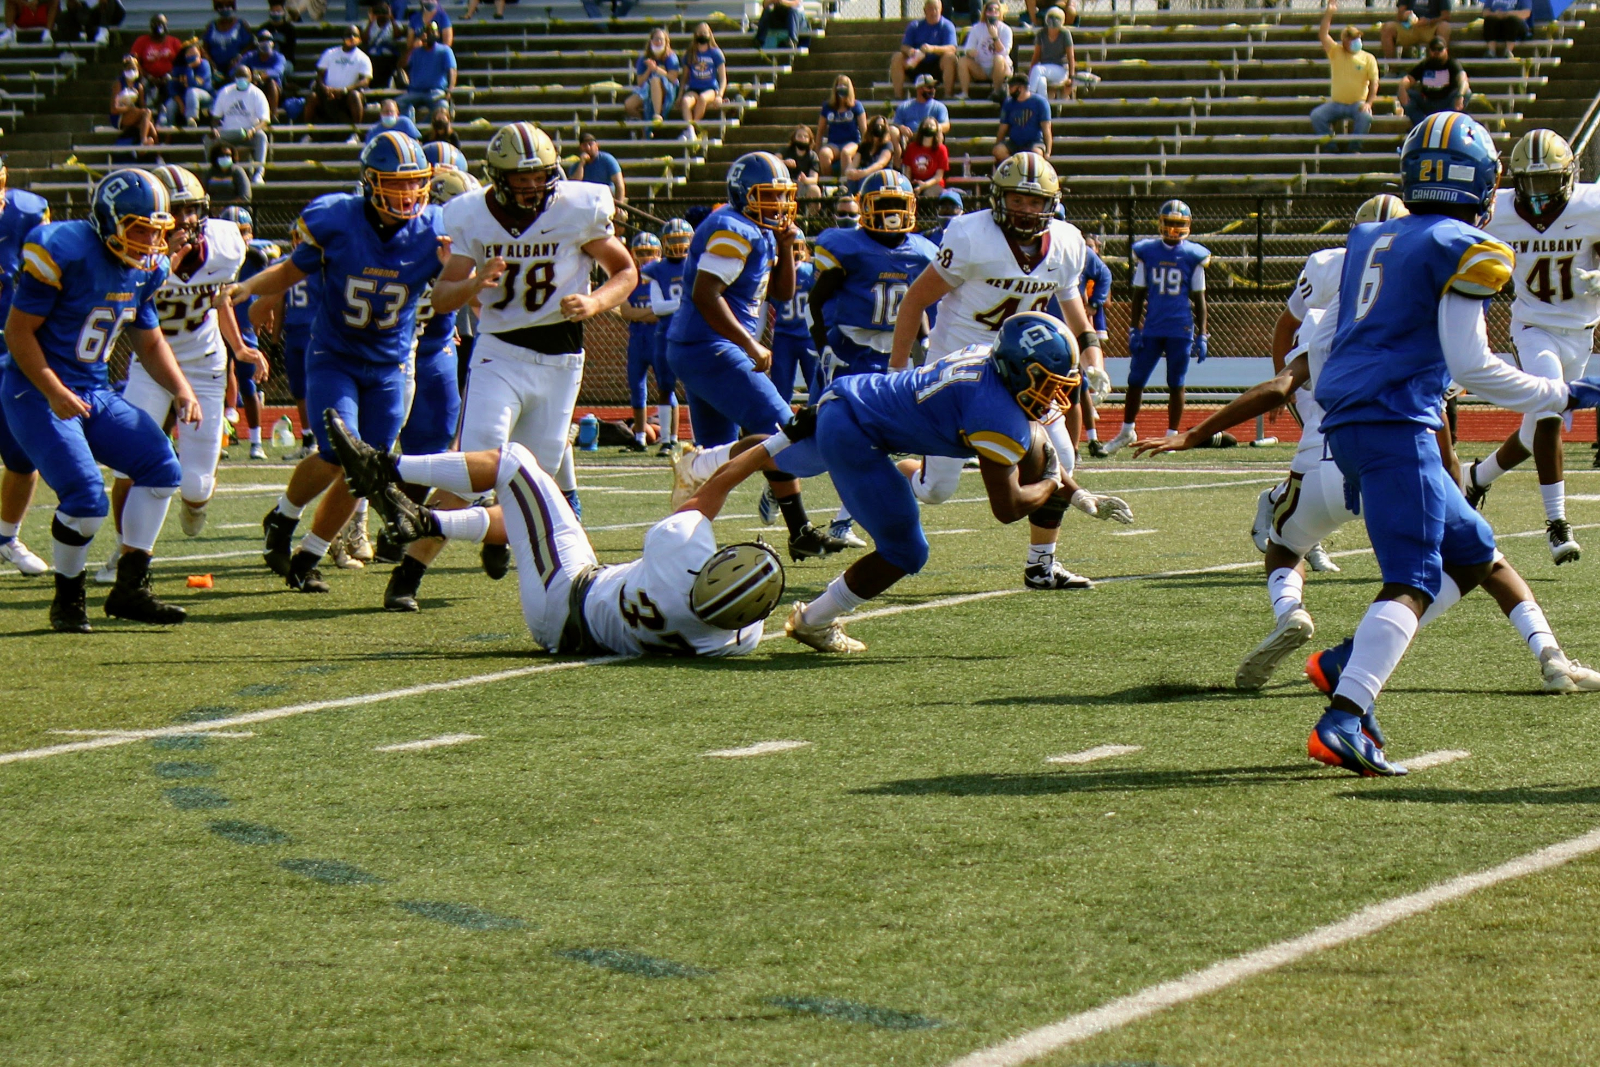 JV Football vs Gahanna Lincoln 9/12/2020